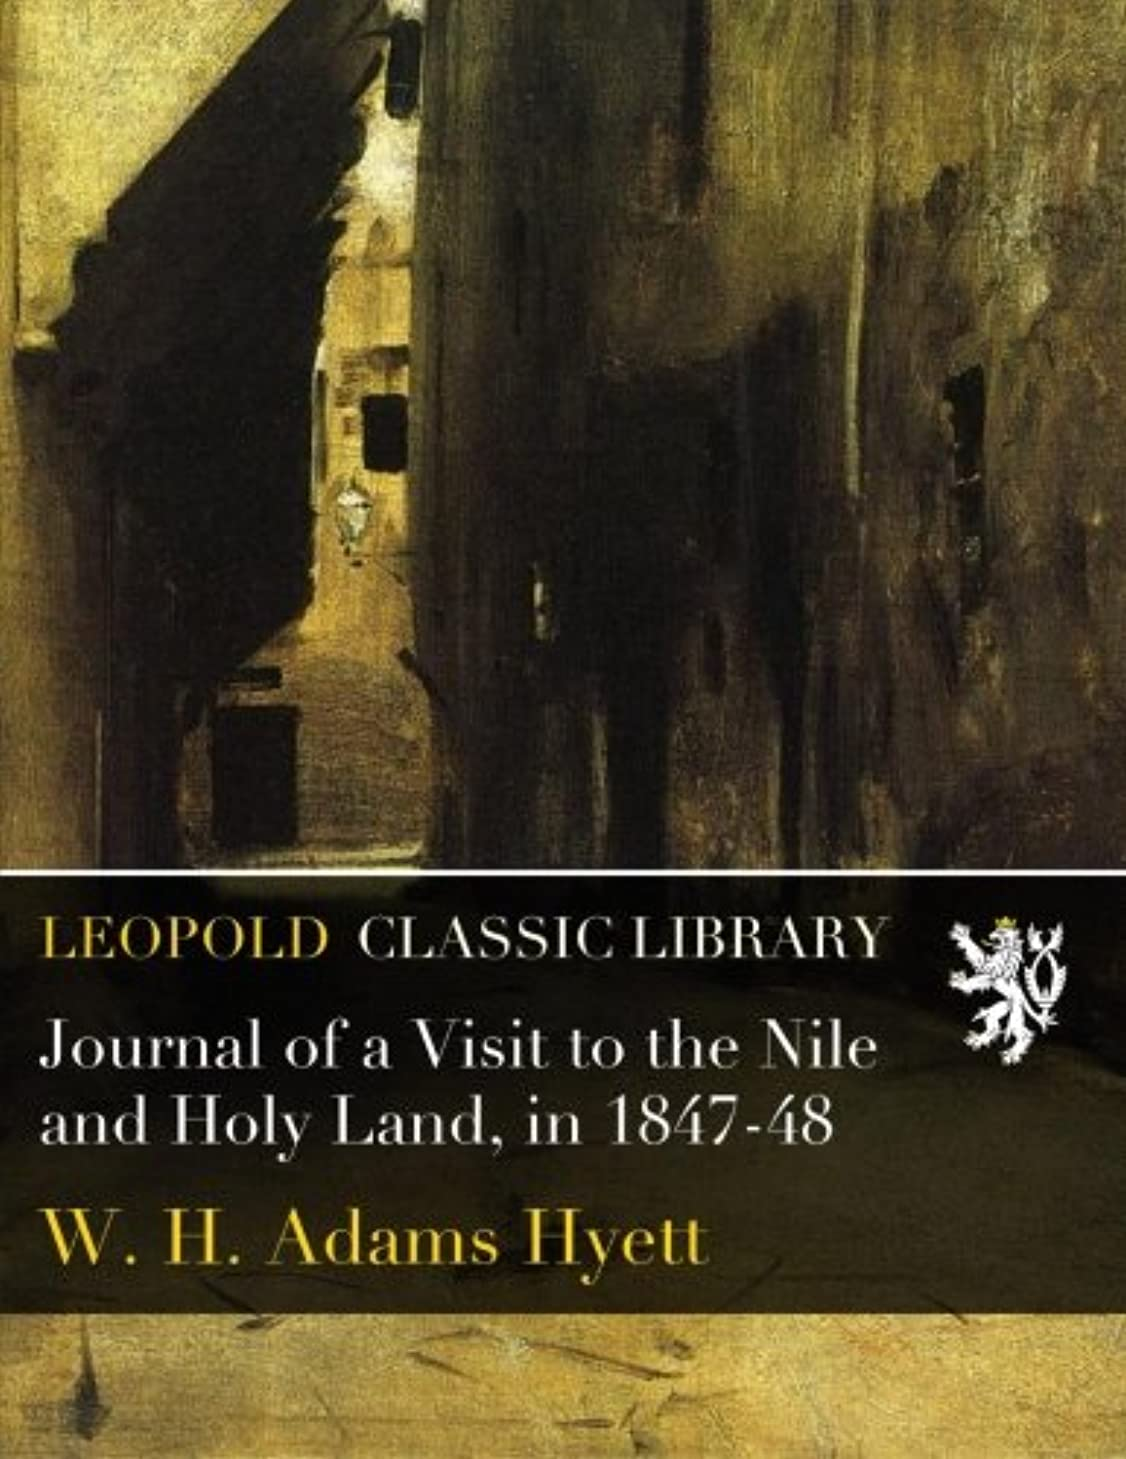 おばあさん太鼓腹怒ってJournal of a Visit to the Nile and Holy Land, in 1847-48